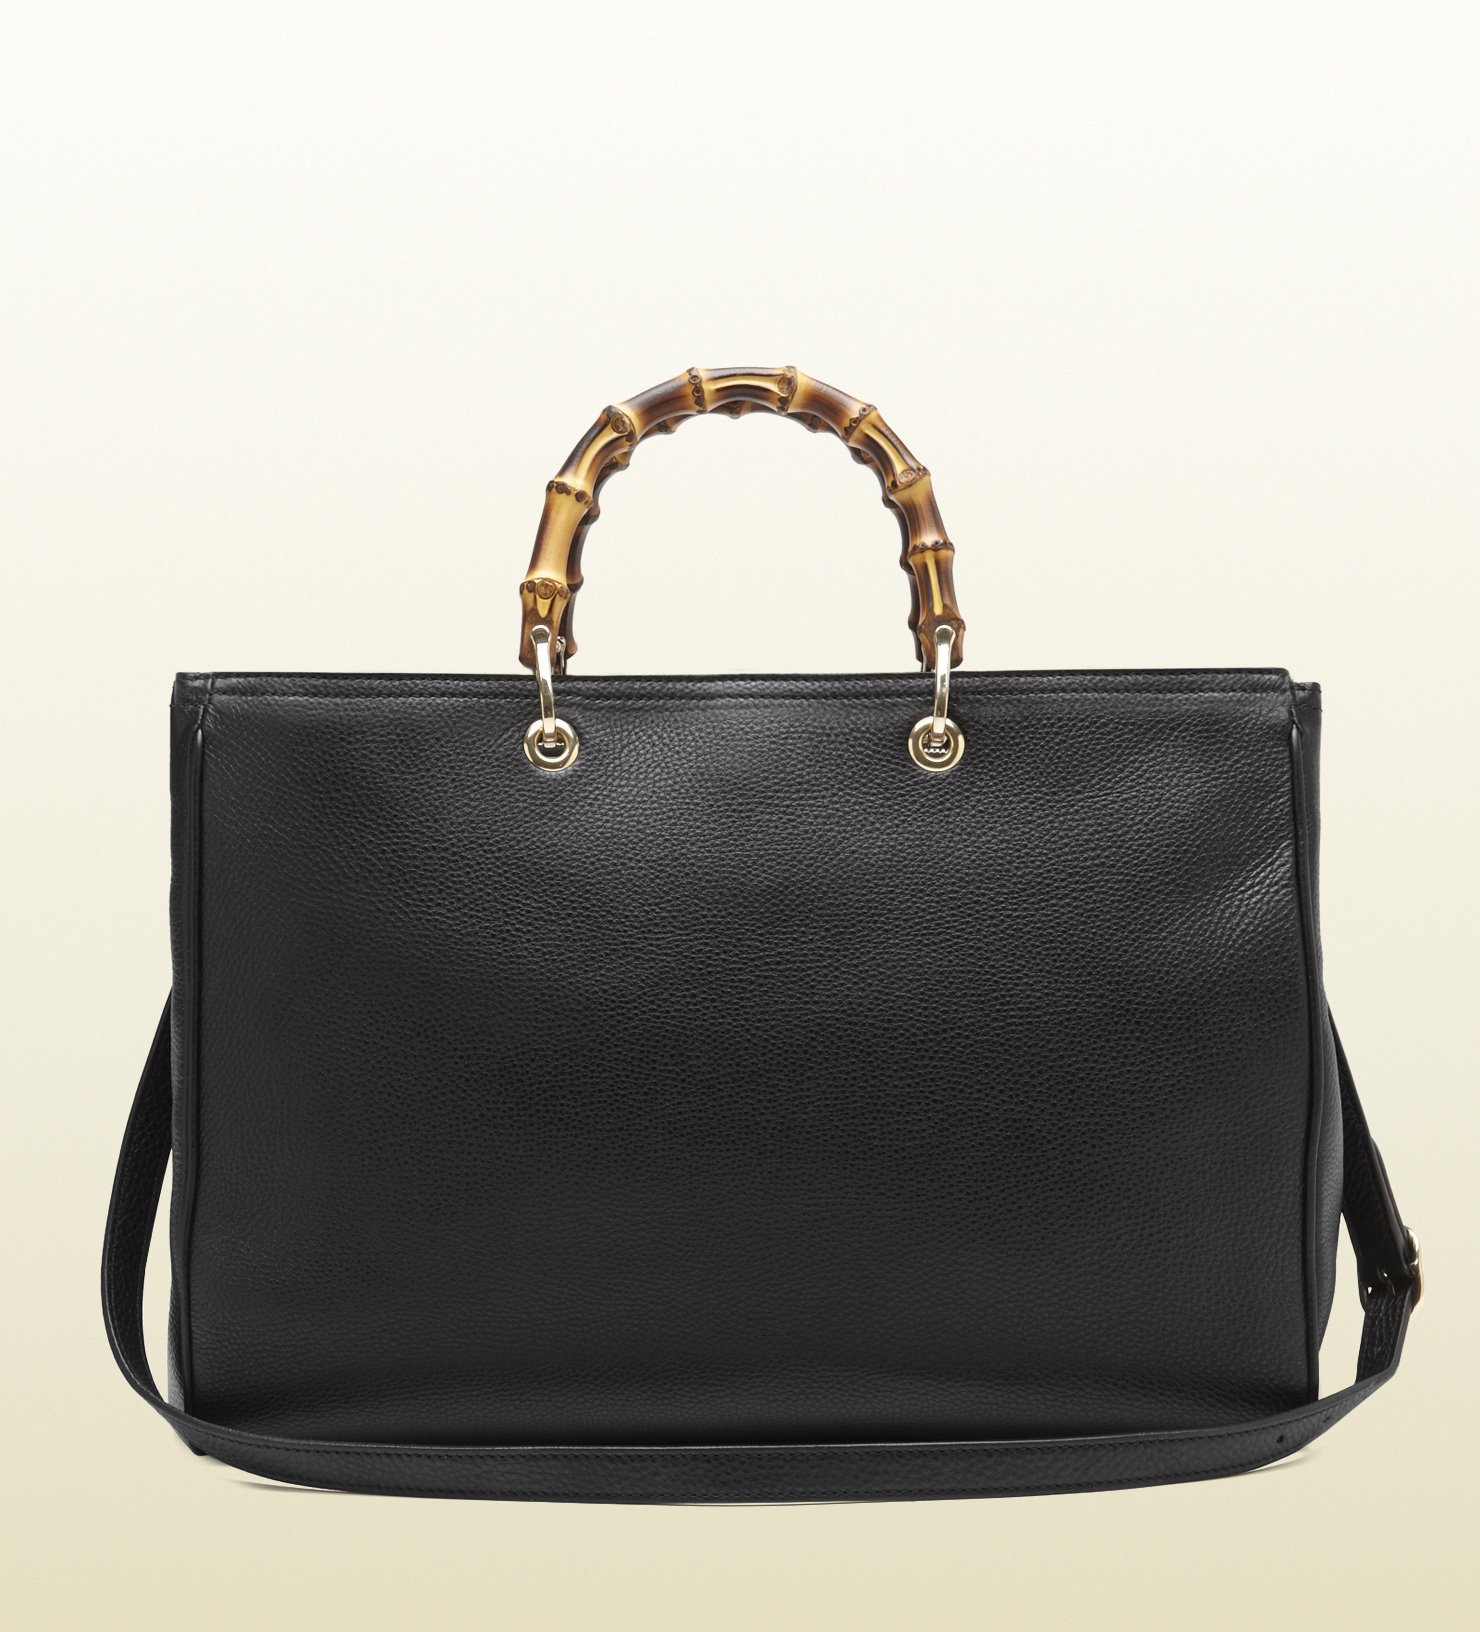 Gucci Bamboo Leather Tote In Black Bamboo Lyst